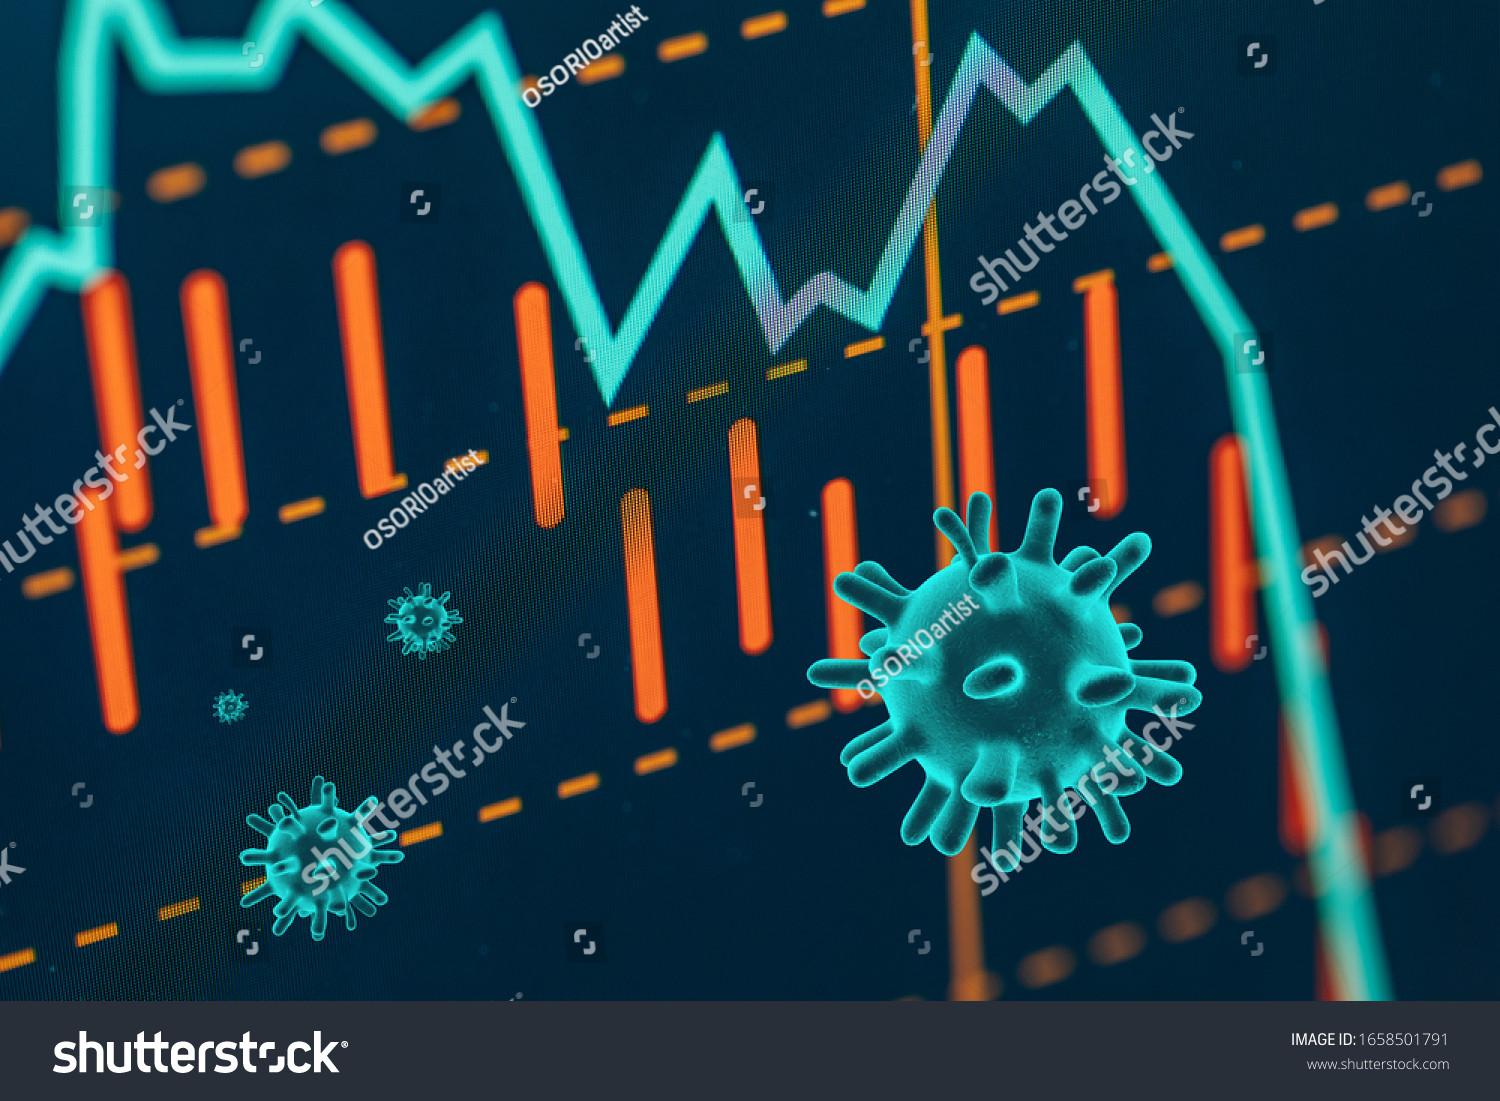 Graphs representing the stock market crash caused by the Coronavirus #1658501791